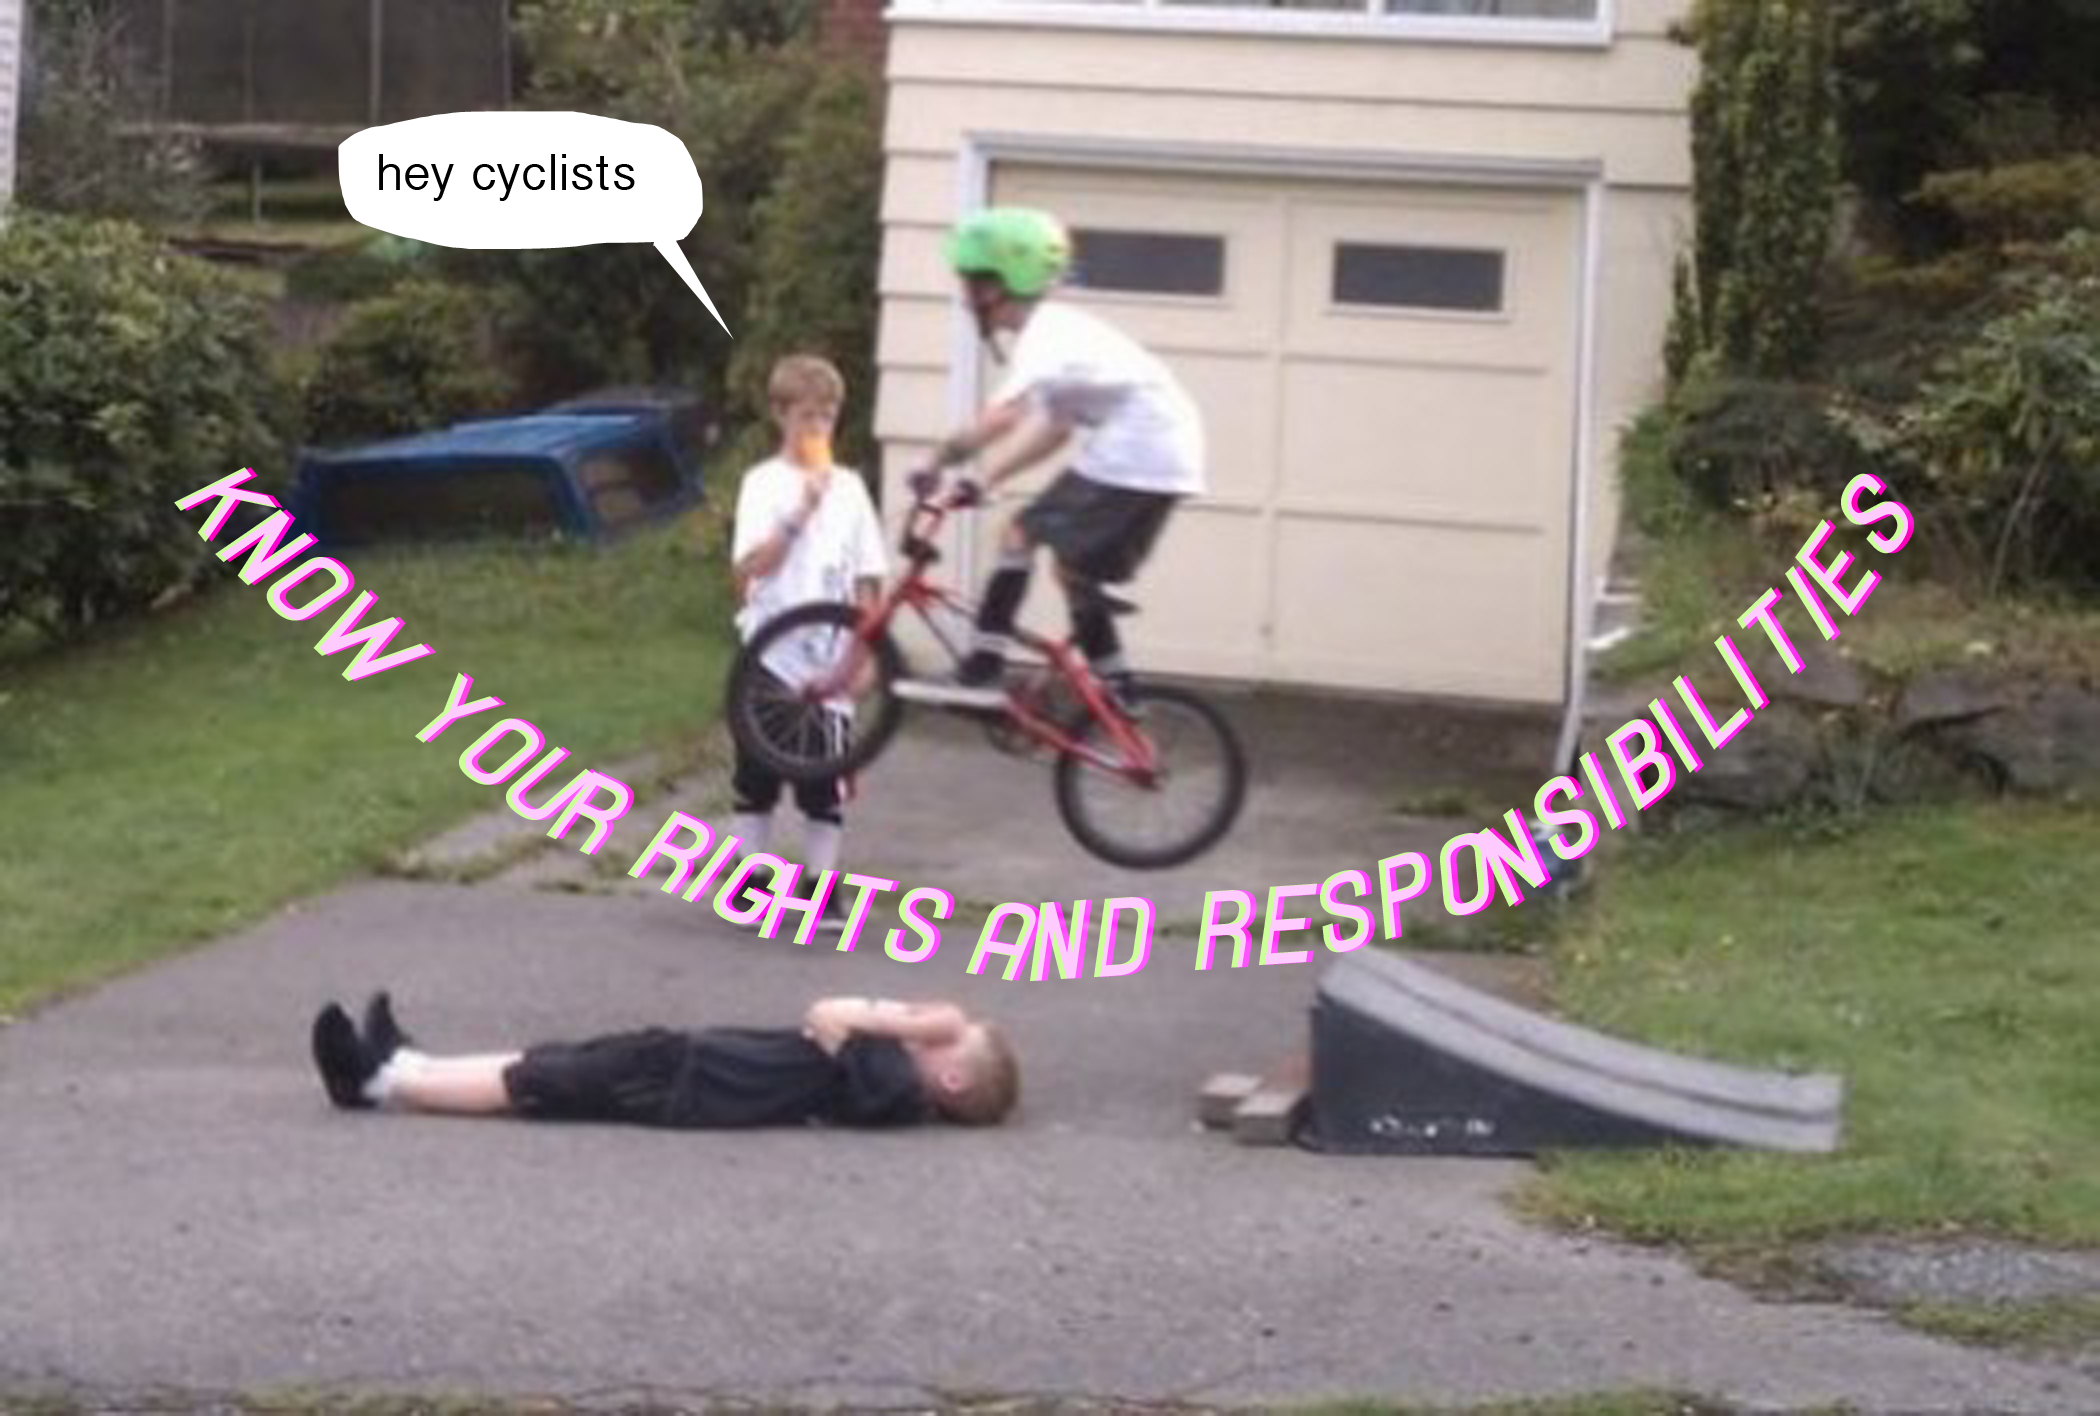 Cyclists: Know Your Rights & Responsibilities